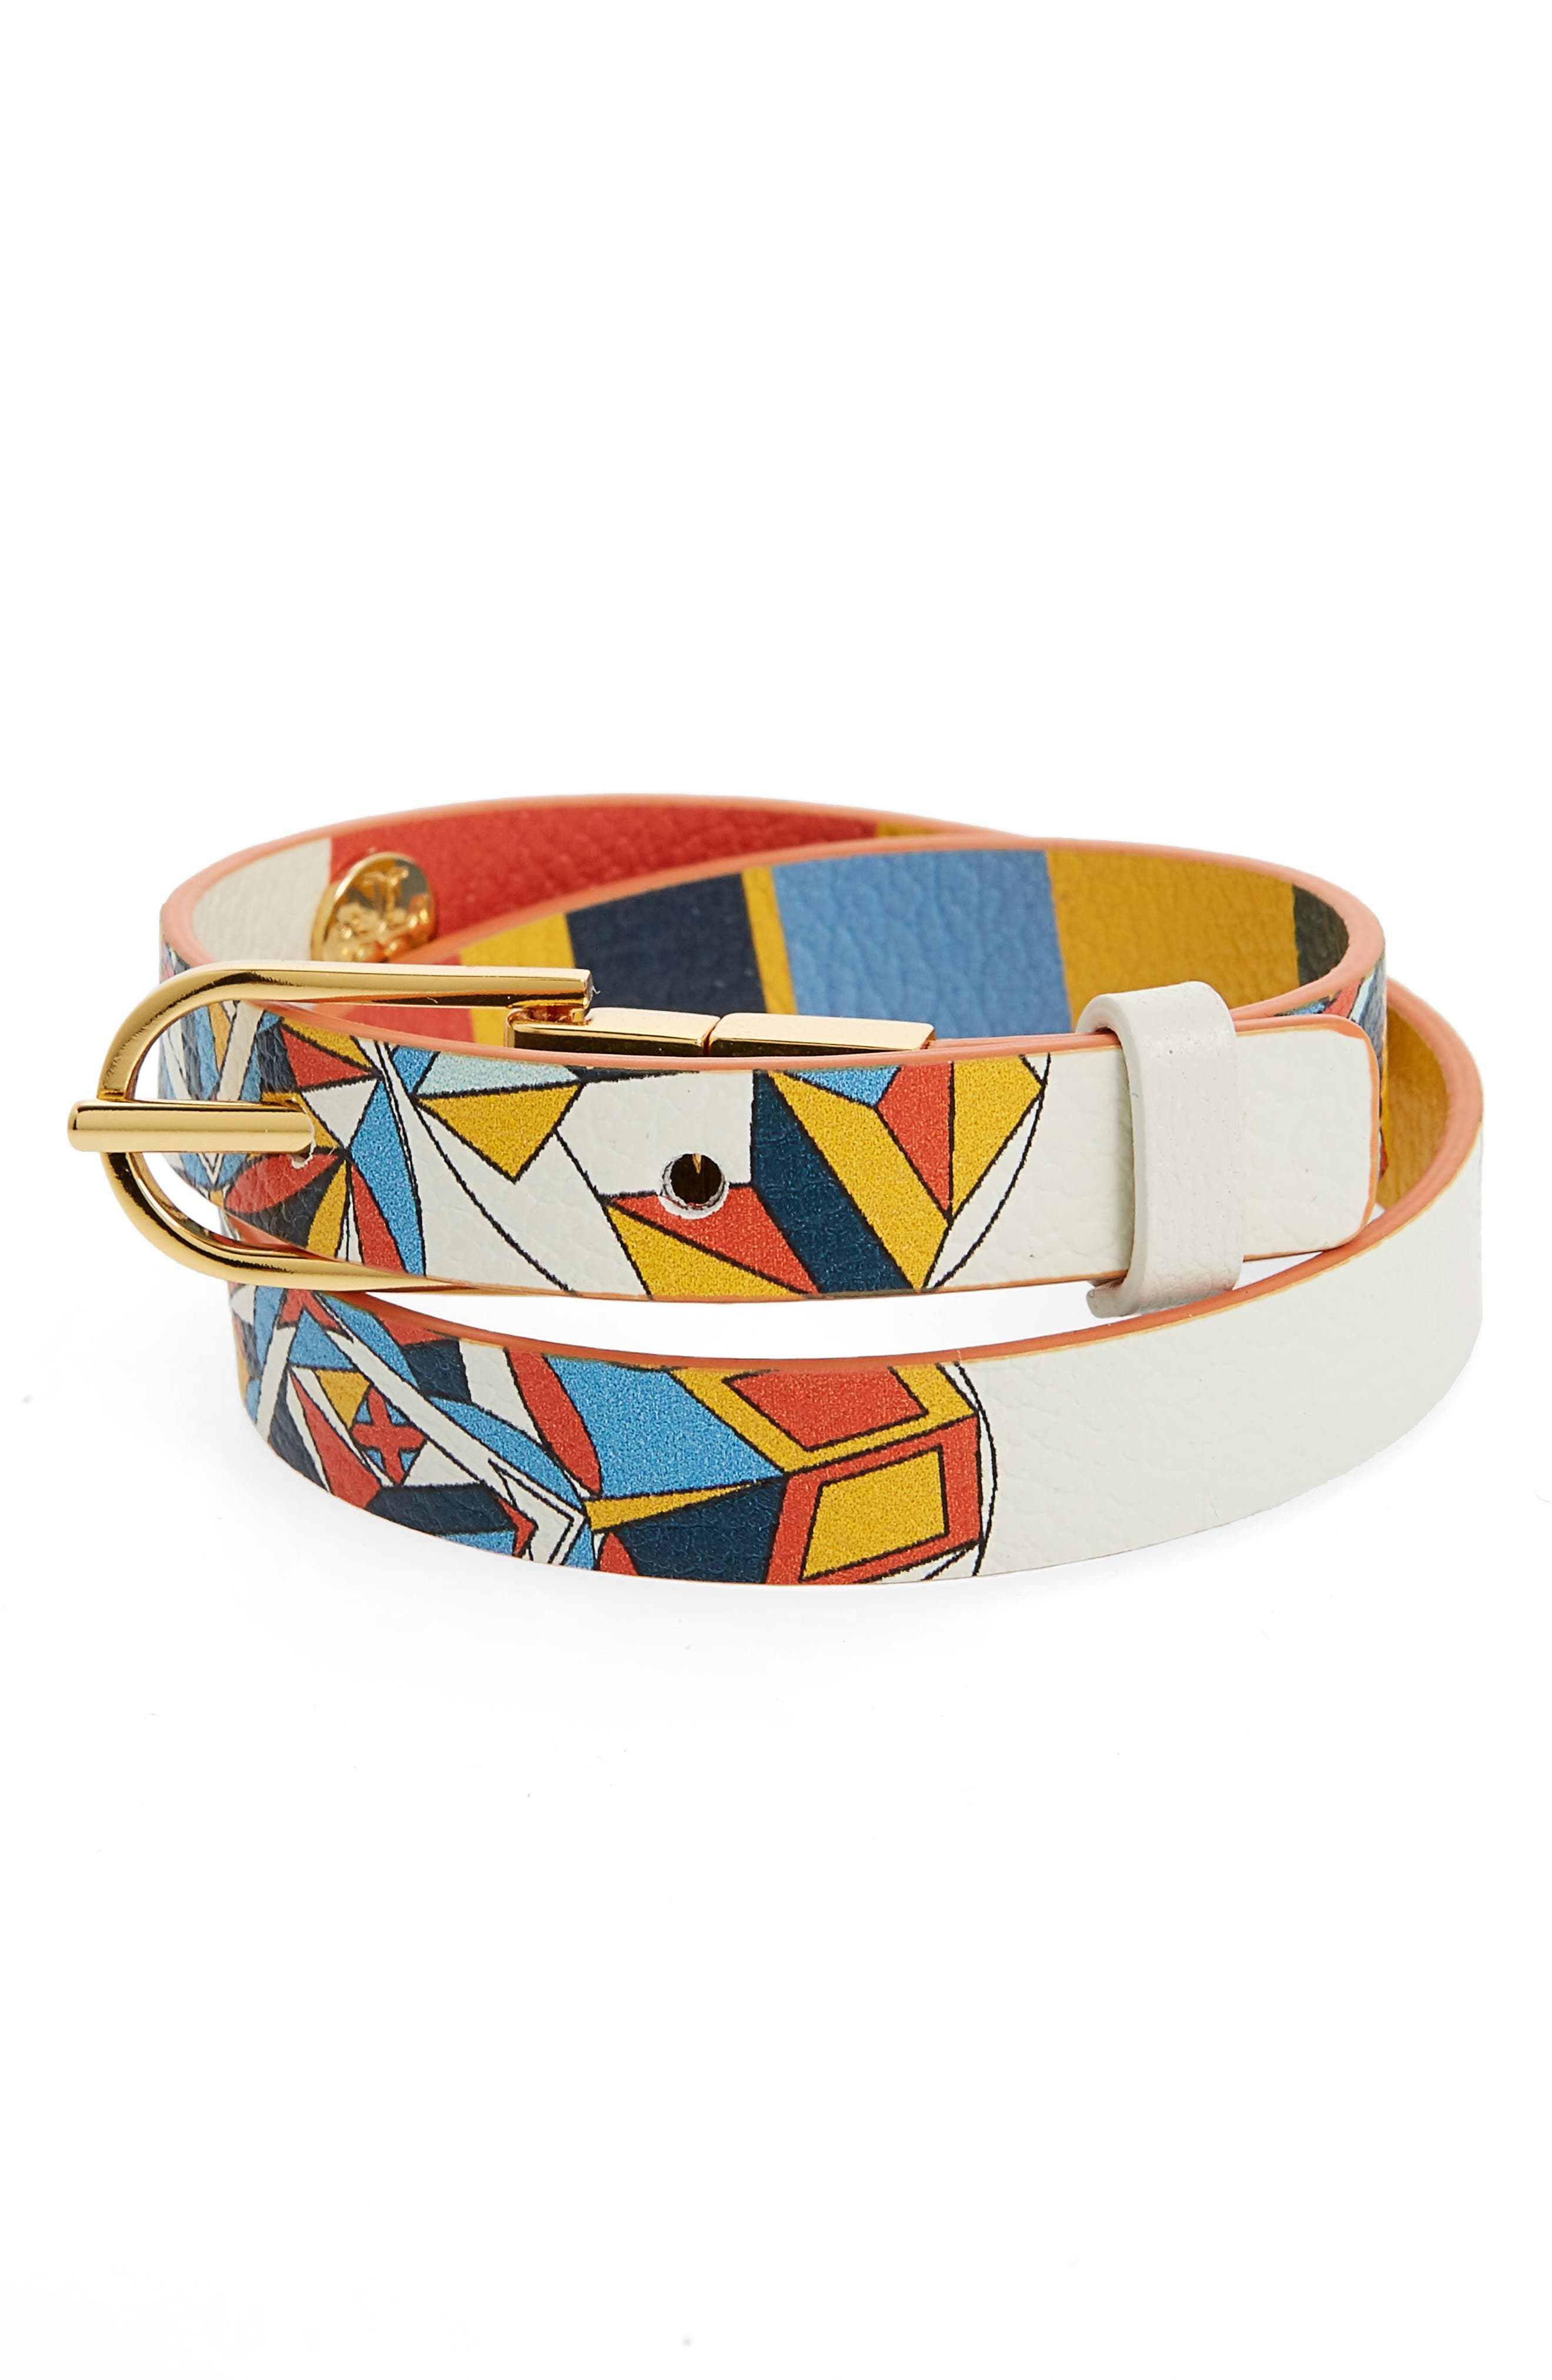 Tory Burch Reversible Fl Print Leather Wrap Bracelet In Kaleidescope